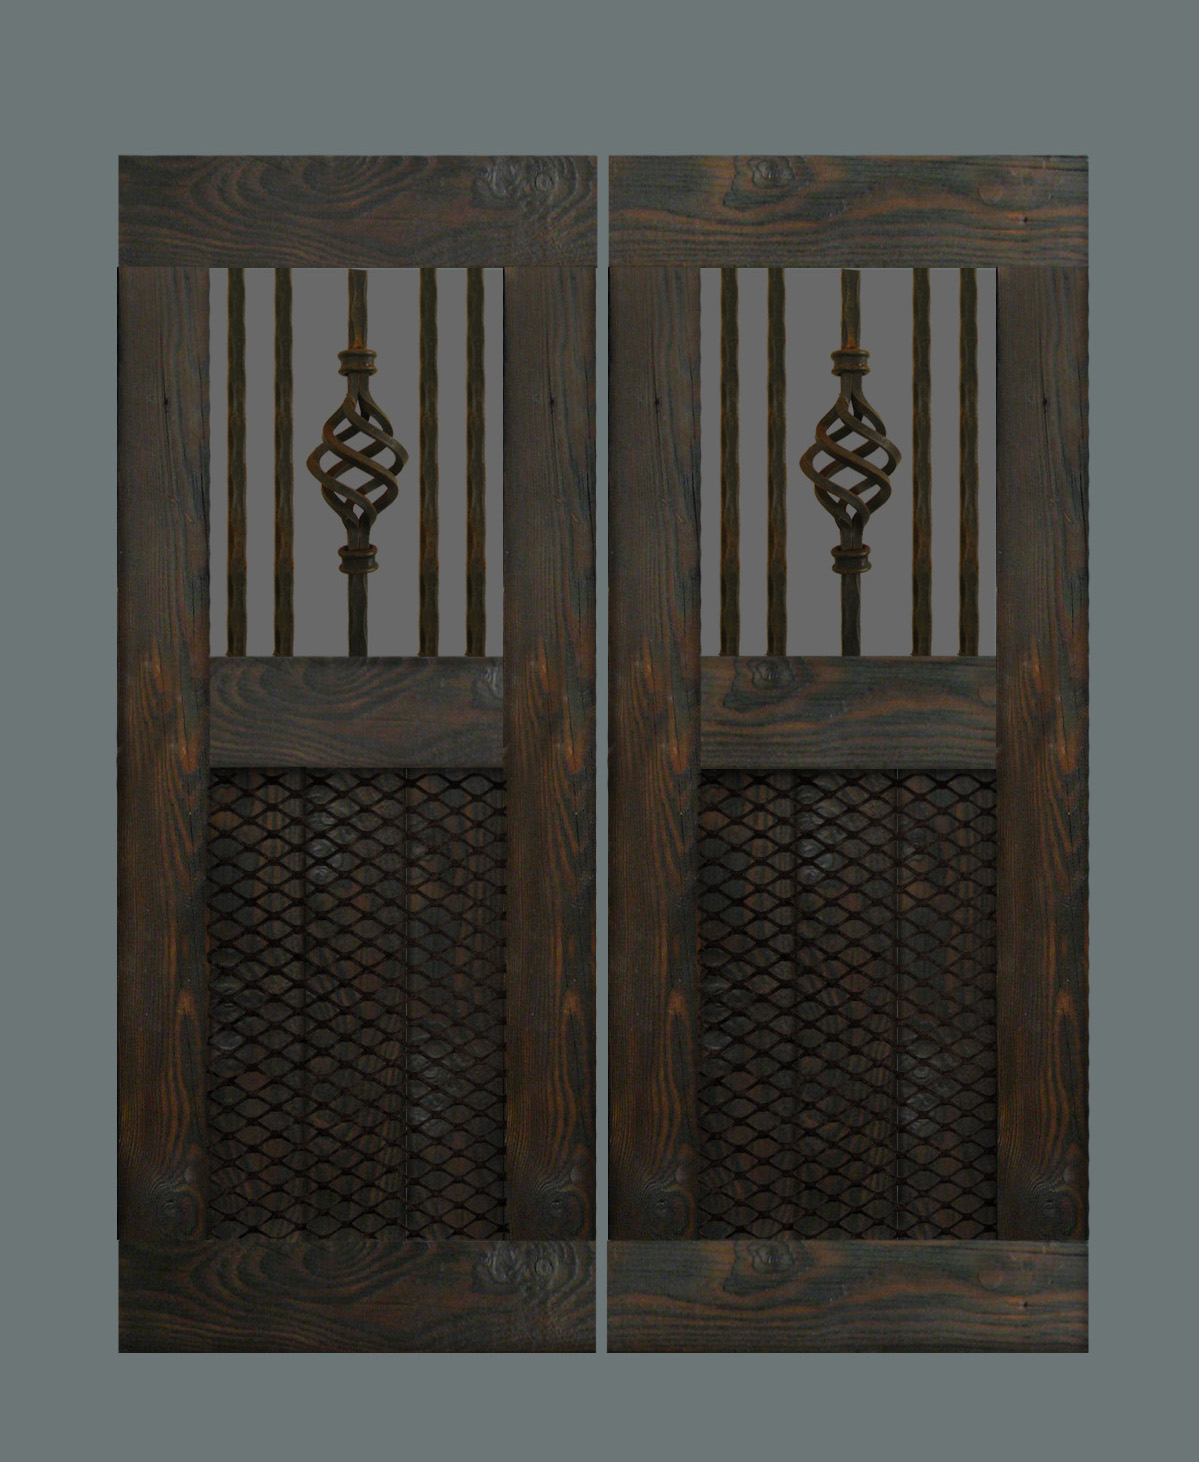 1462 #5A4A3C Handcrafted Swinging Saloon Doors With Reclaimed Wrought Iron And  wallpaper Interior Swing Doors 10251199